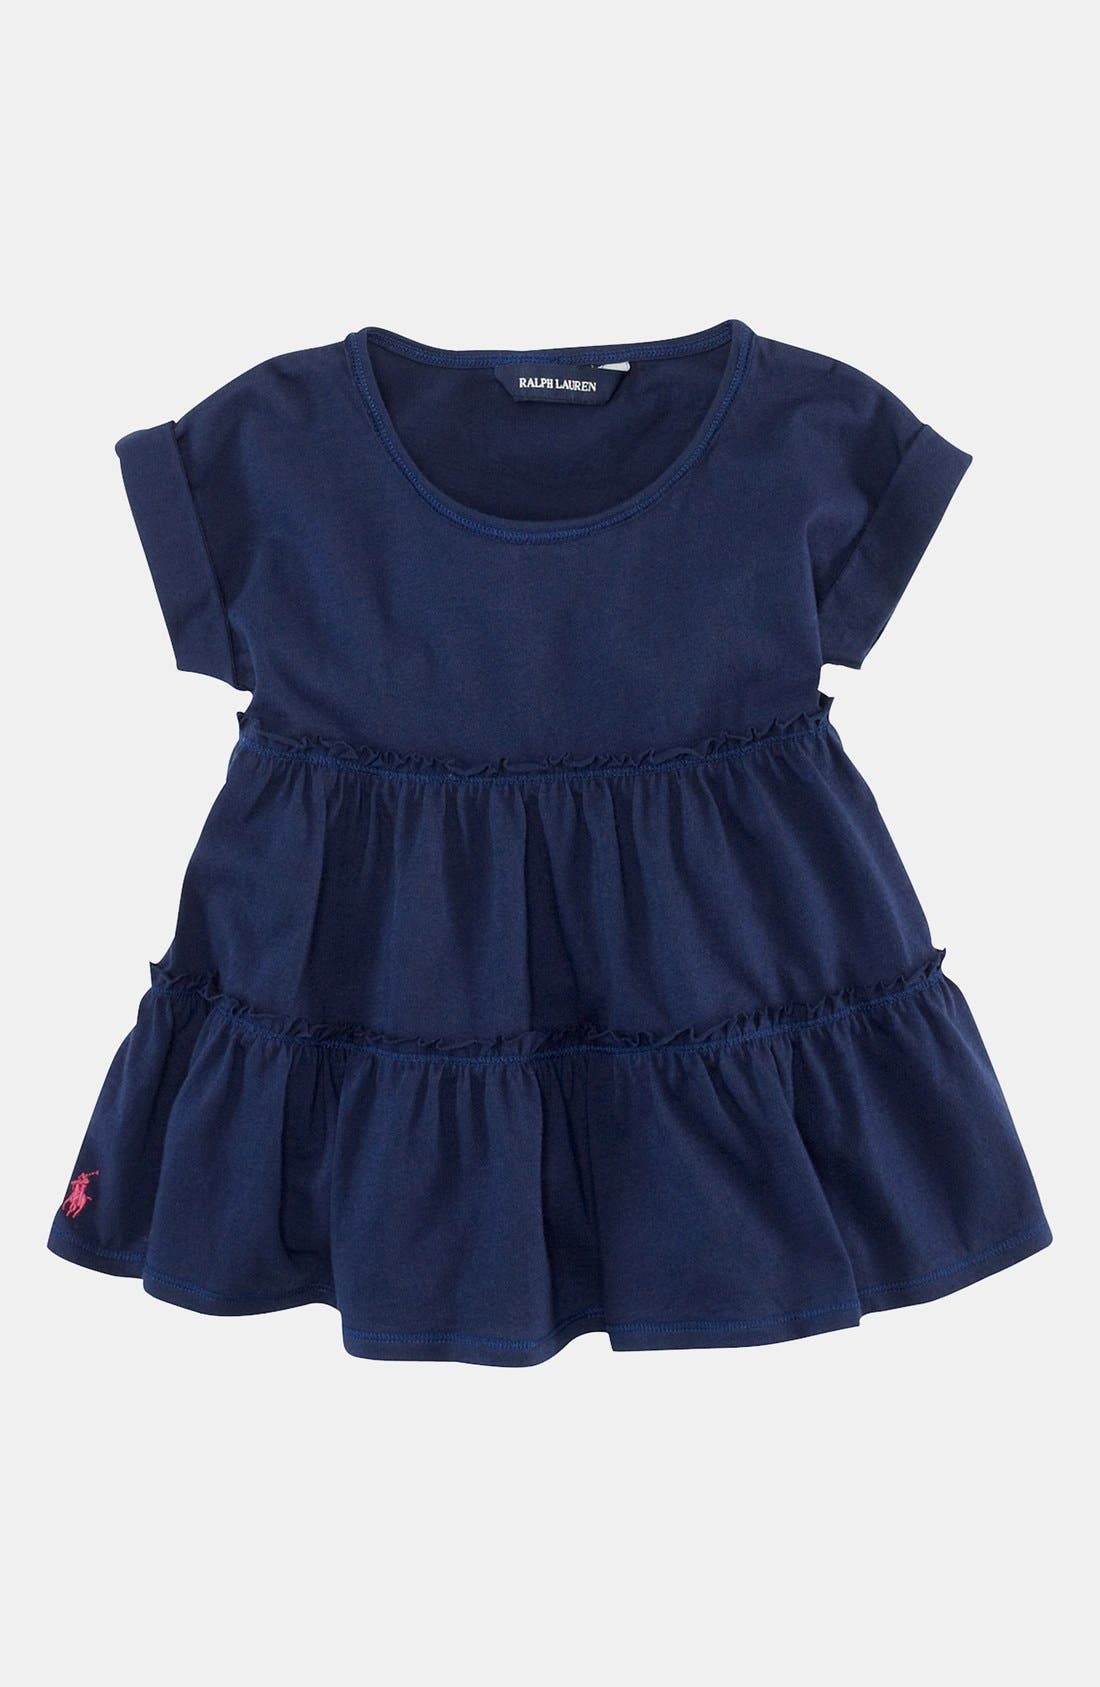 Main Image - Ralph Lauren Knit Top (Toddler)